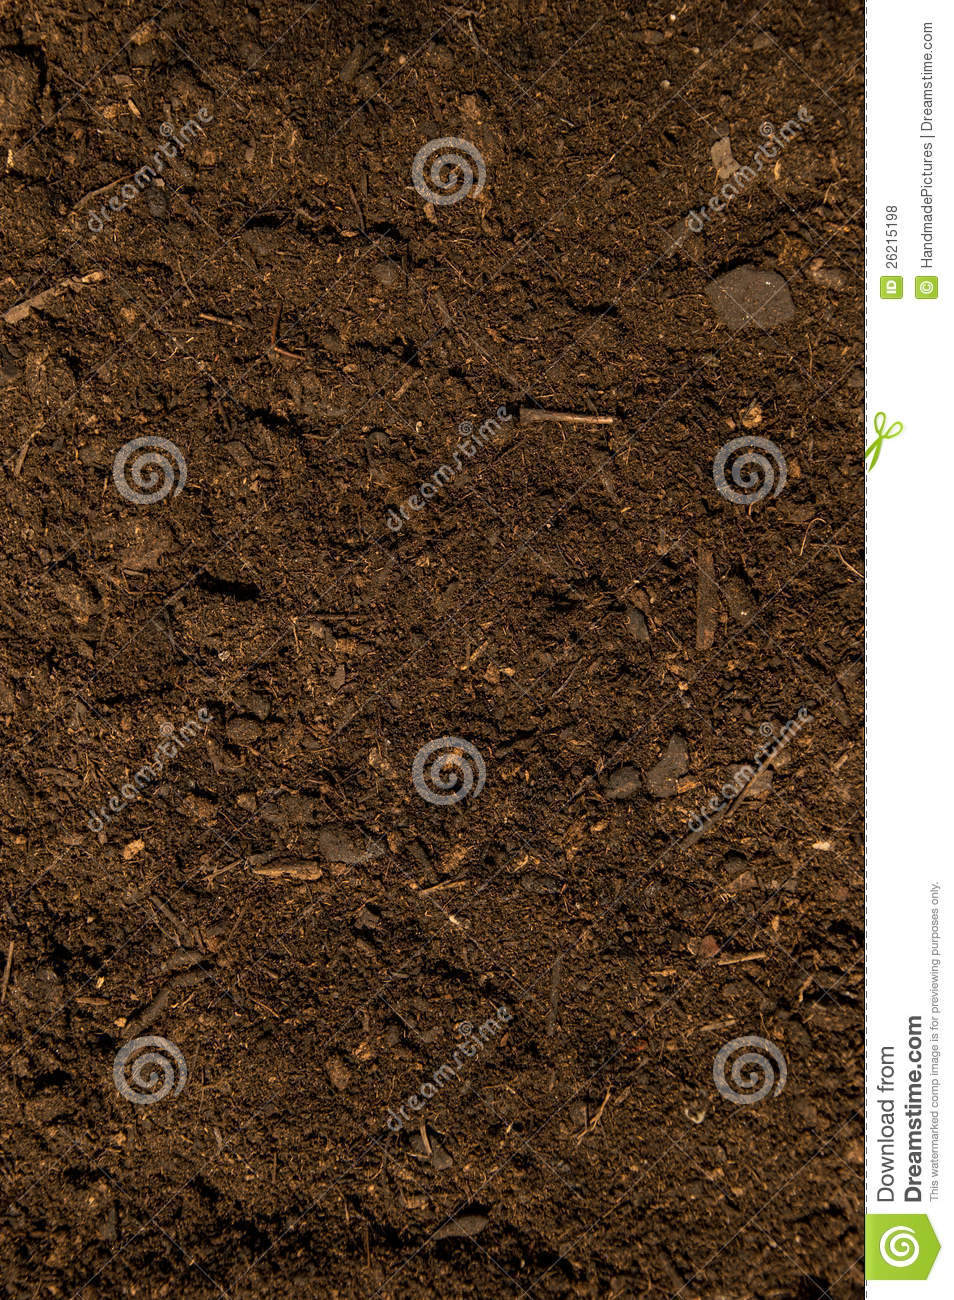 Dark Dirt Texture stock photo Image of brown environment 26215198